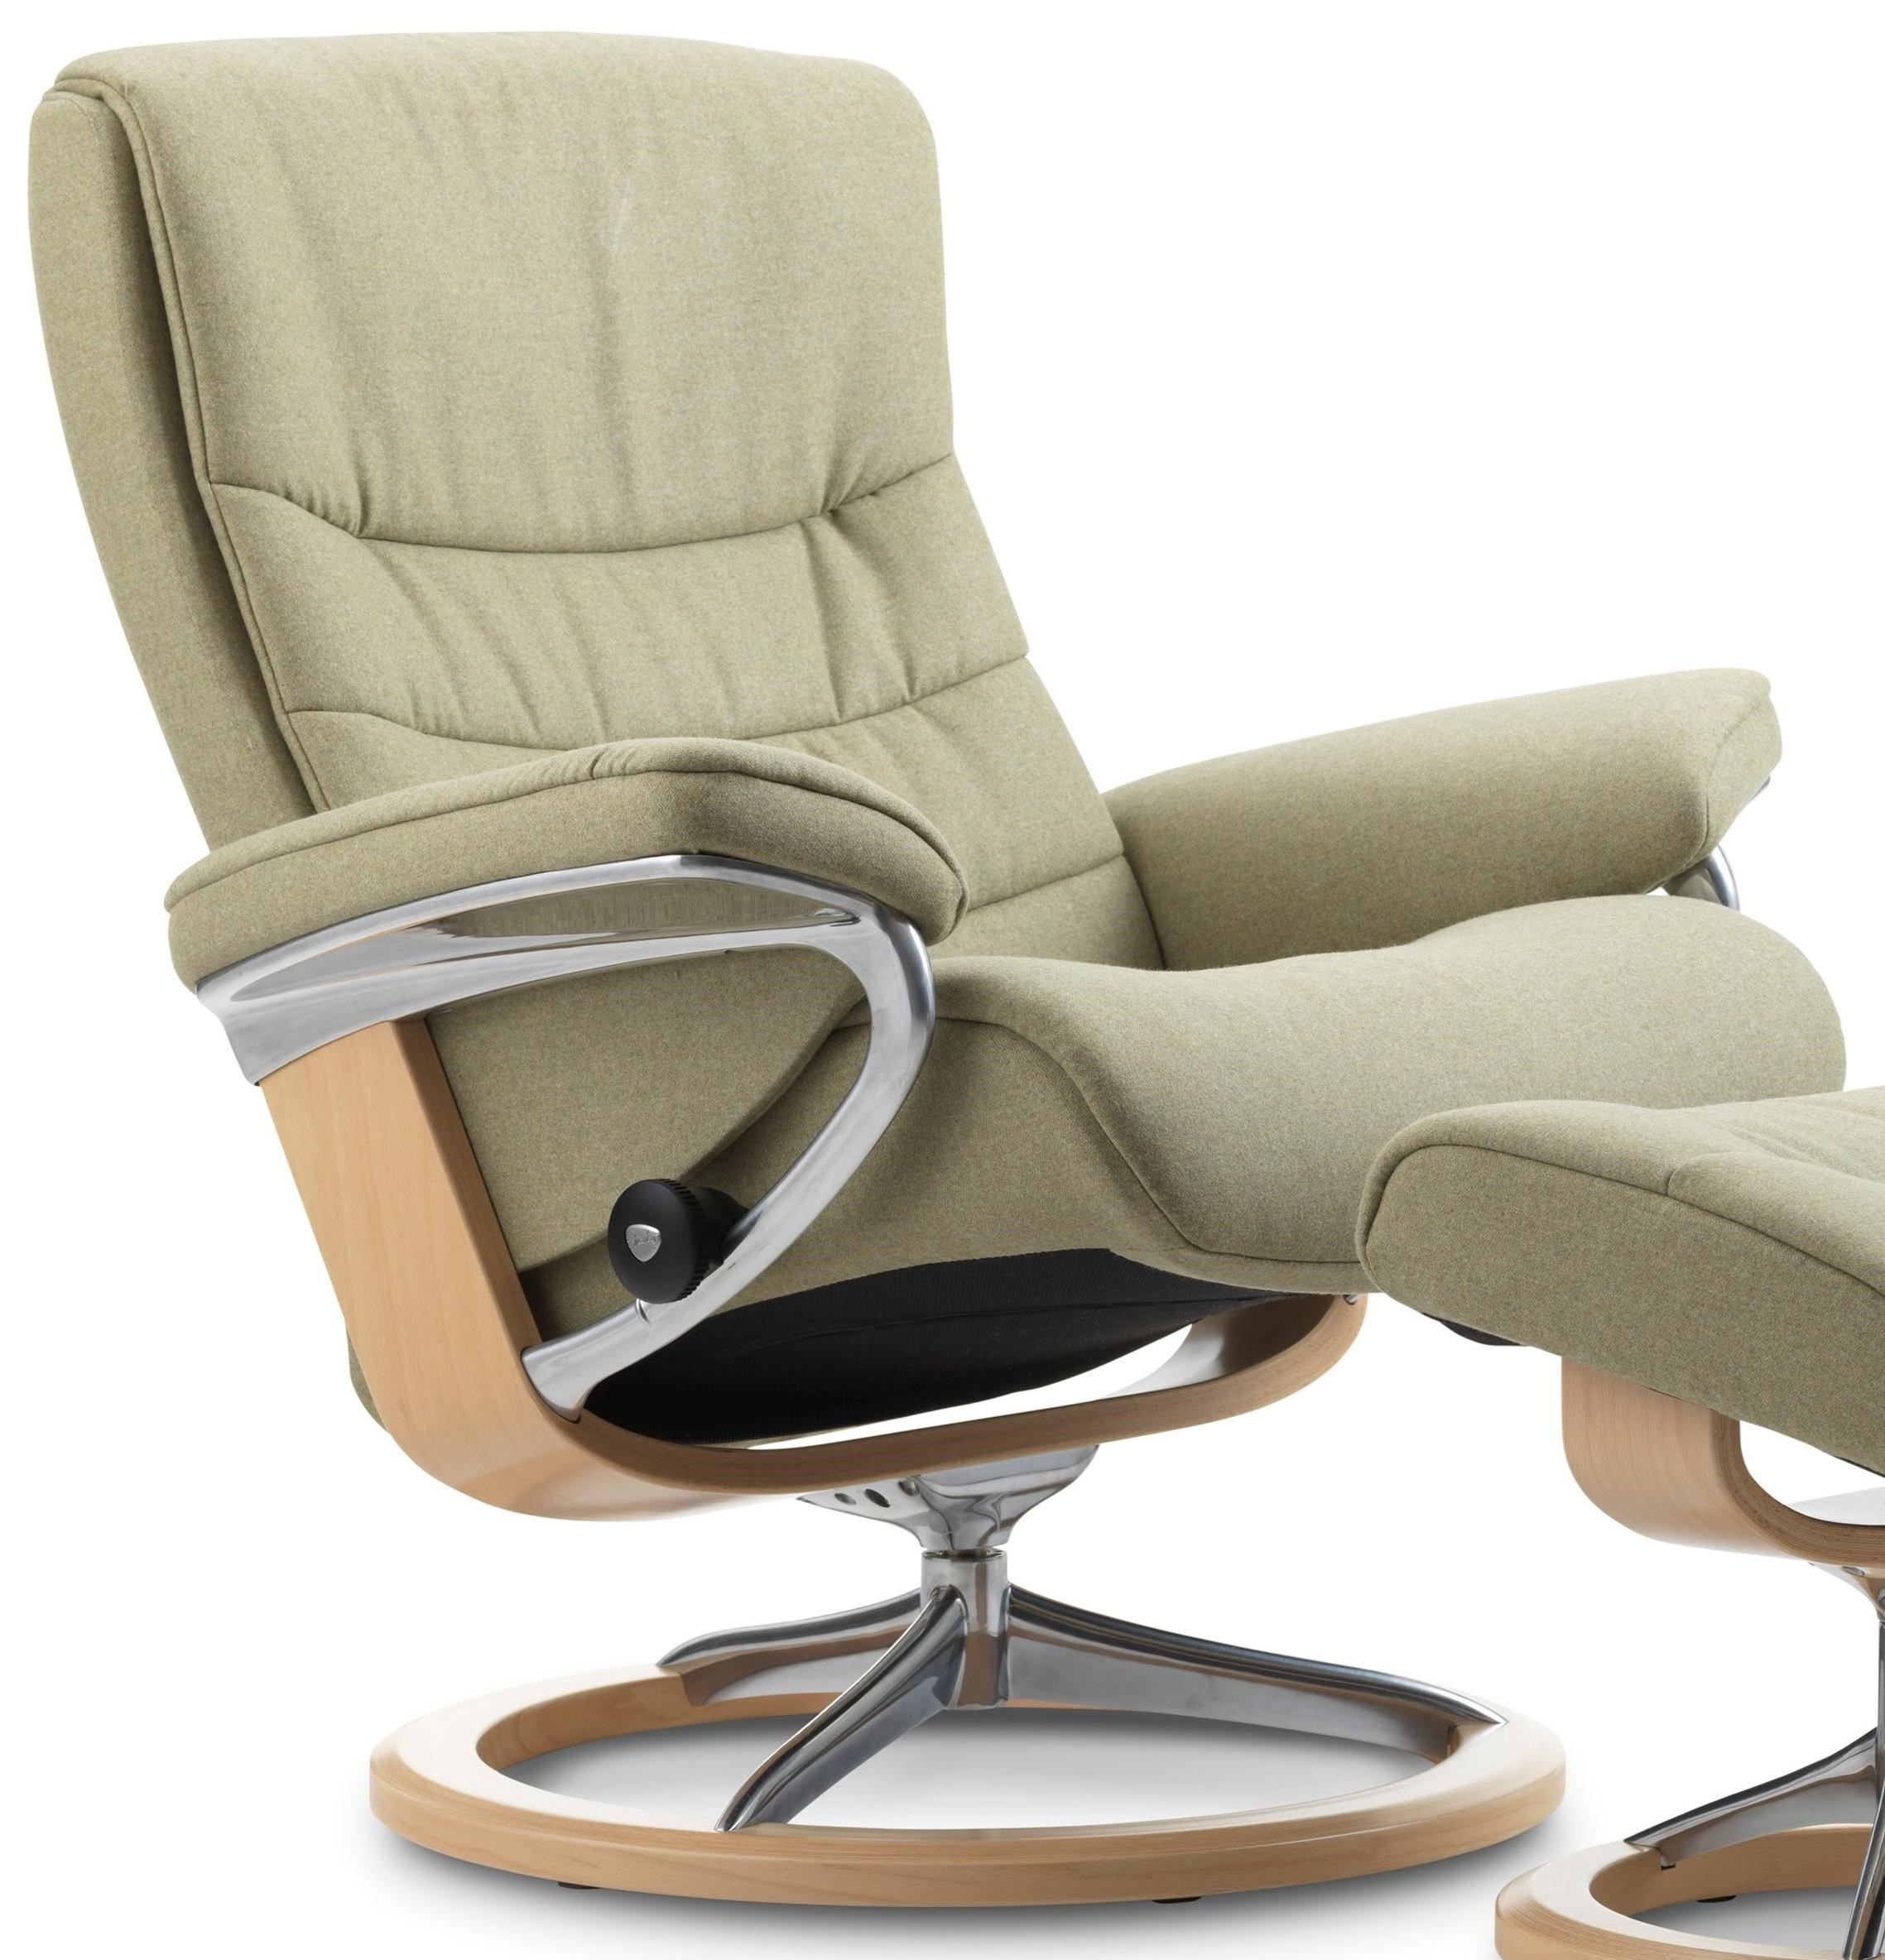 Stressless Nordic Legcomfort Stressless Nordic Medium Reclining Chair With Signature Base